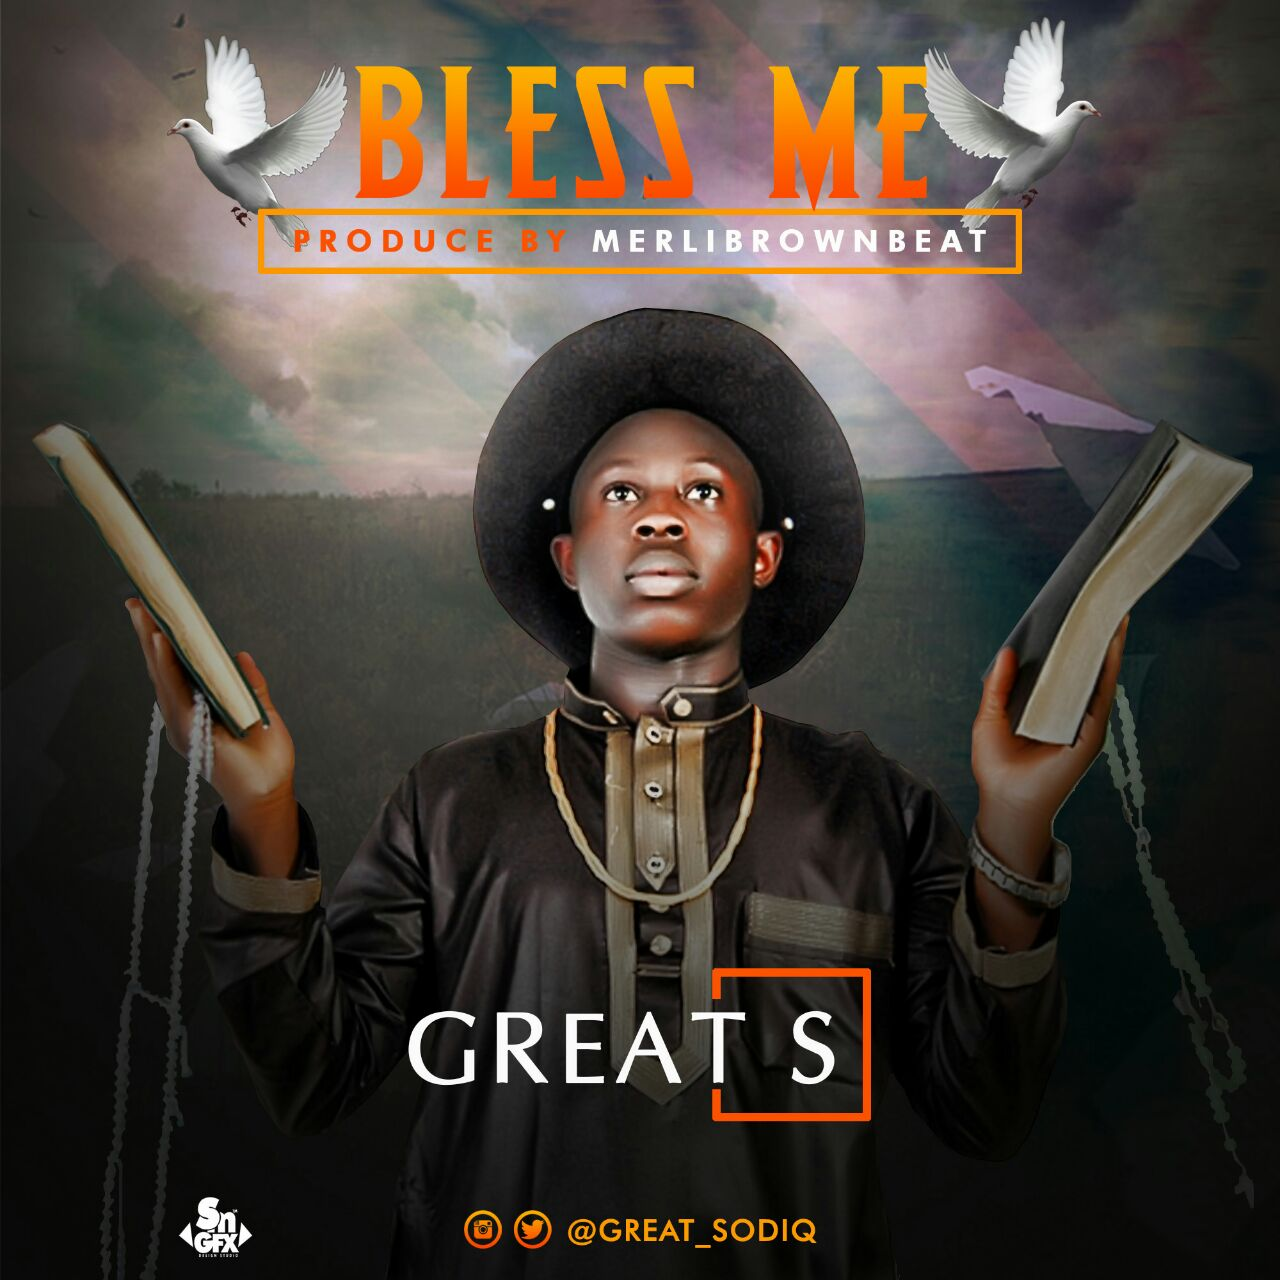 NEW JAM!  BLESS ME BY GREAT-S @great_sodiq